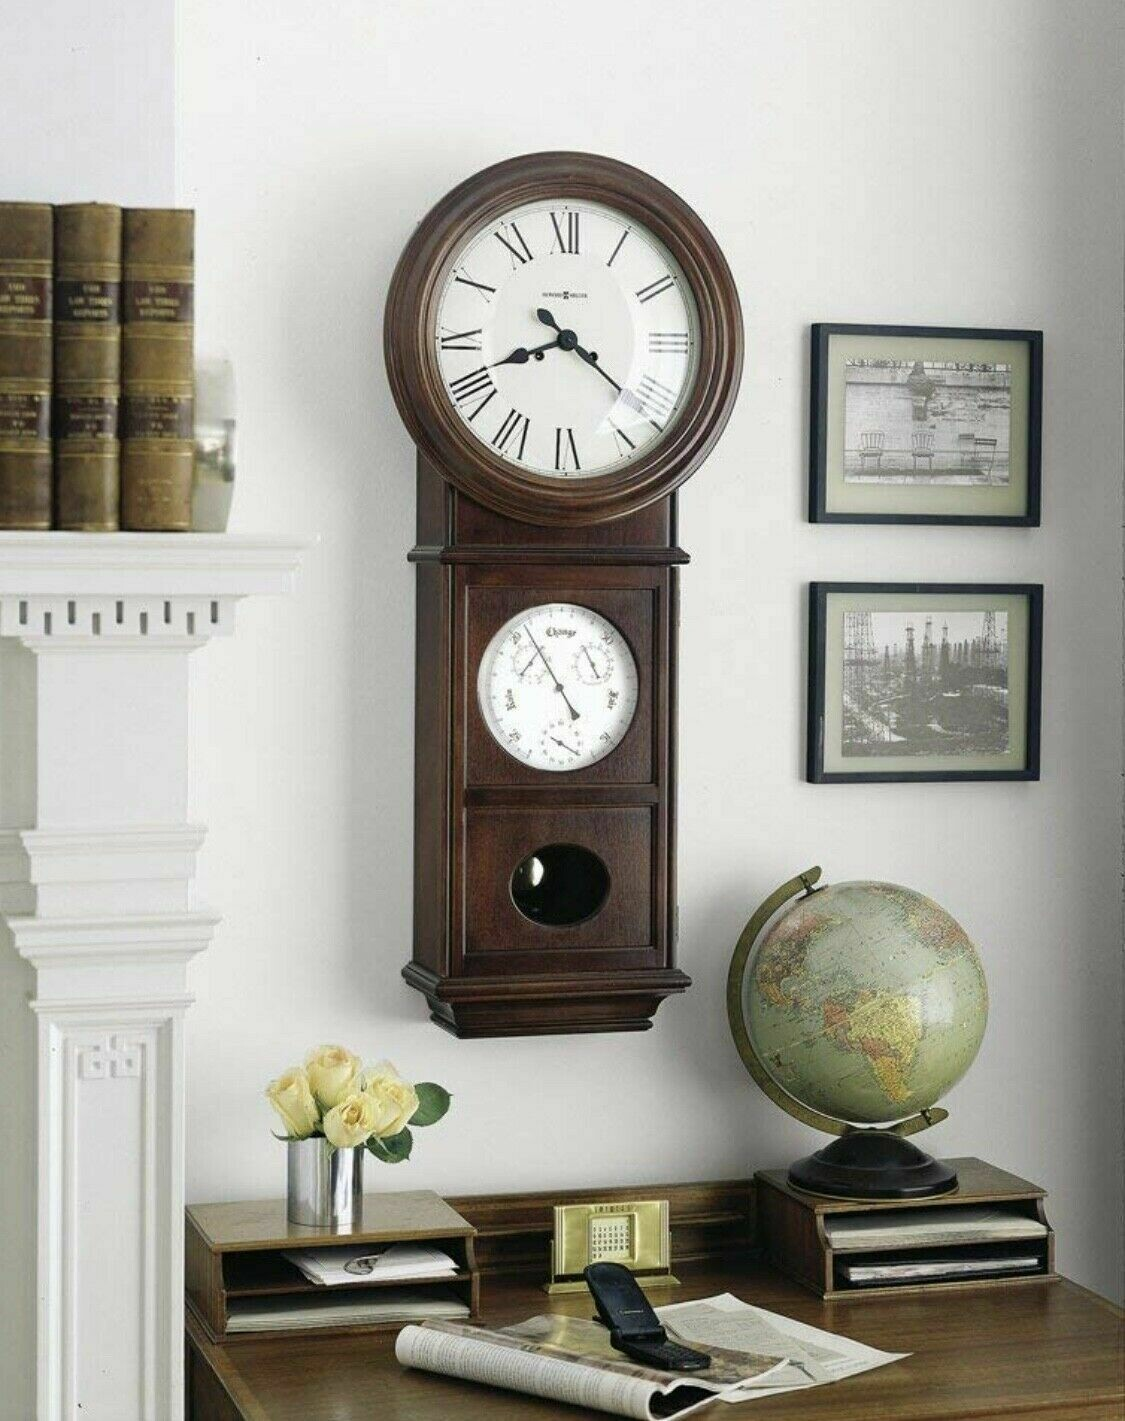 Howard Miller Lawyer ll Chiming Key Wound Mechanical Wall Clock 620-249